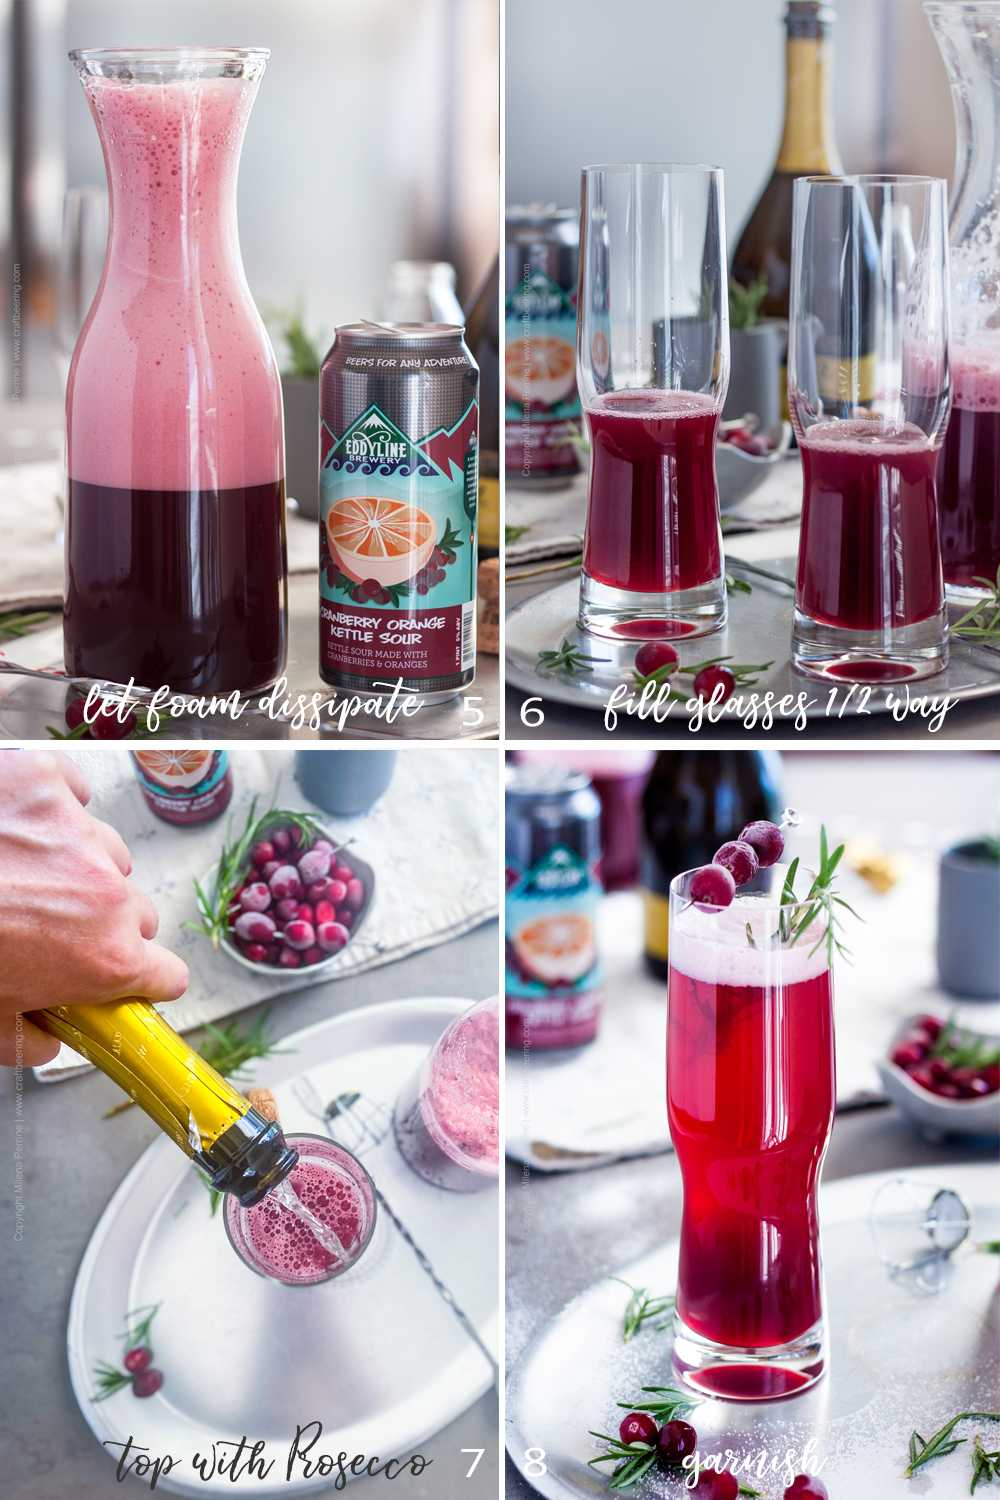 Steps to mix prosecco cocktail with cranberry, rosemary and effervescent fruity kettle sour ale. Part 2.